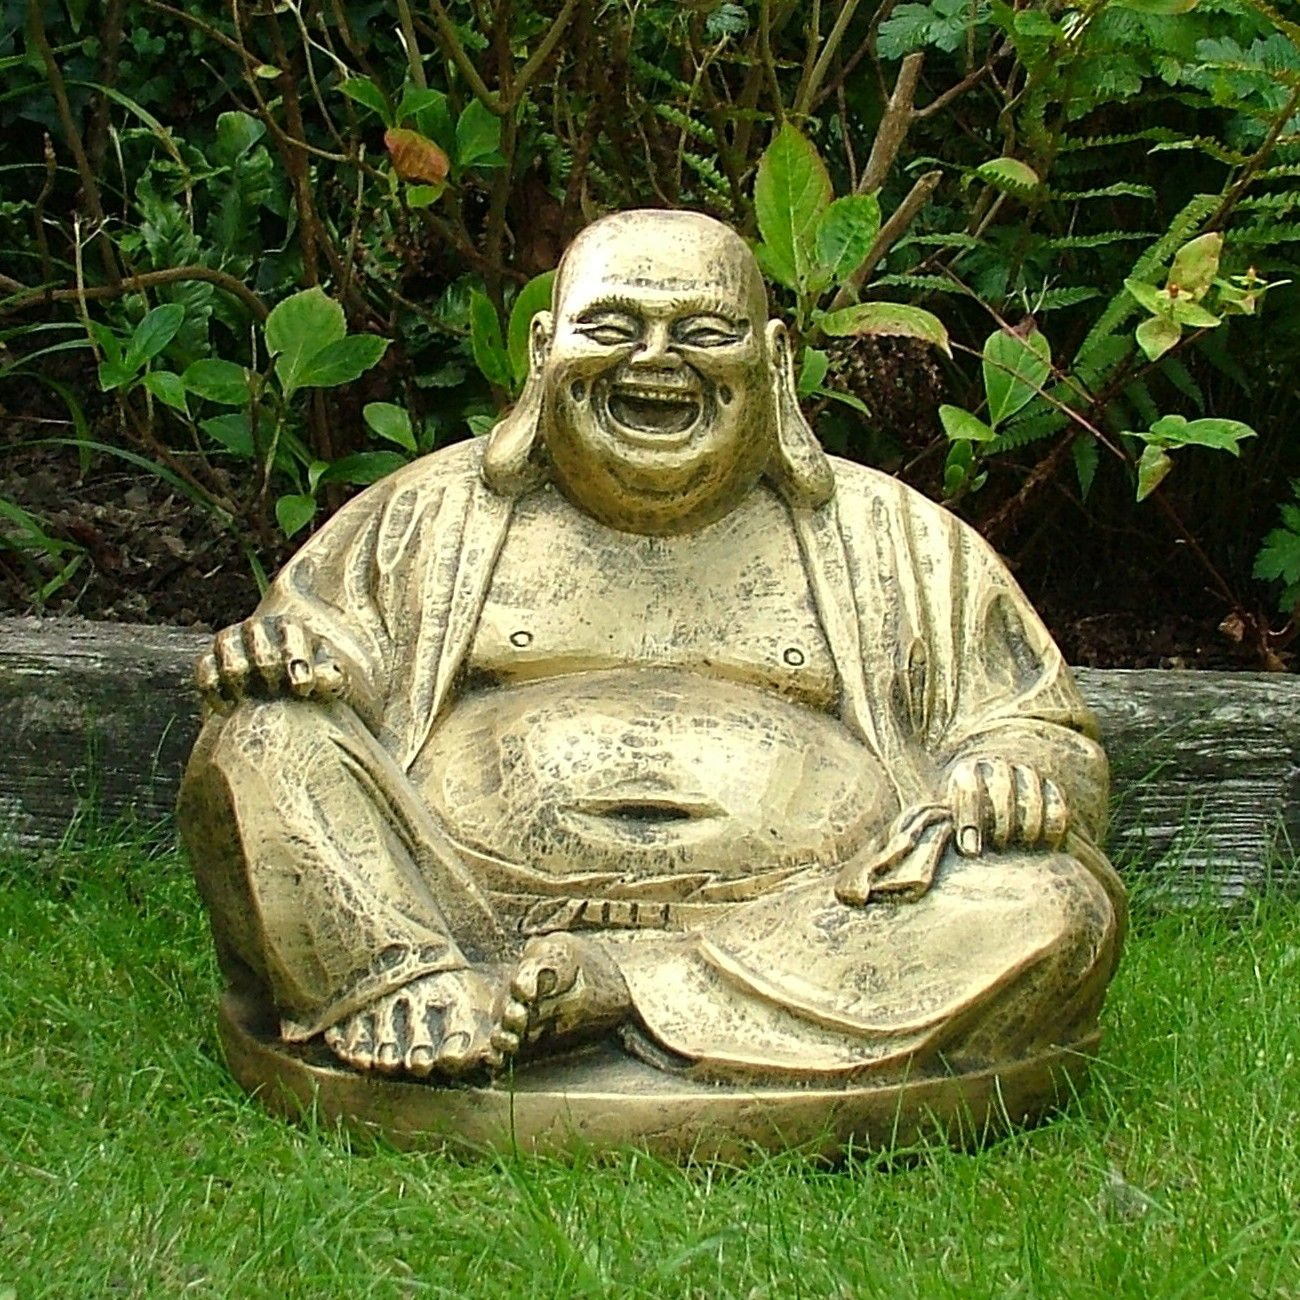 Laughing Buddha Garden Statue Outdoor Make the landscaping a place